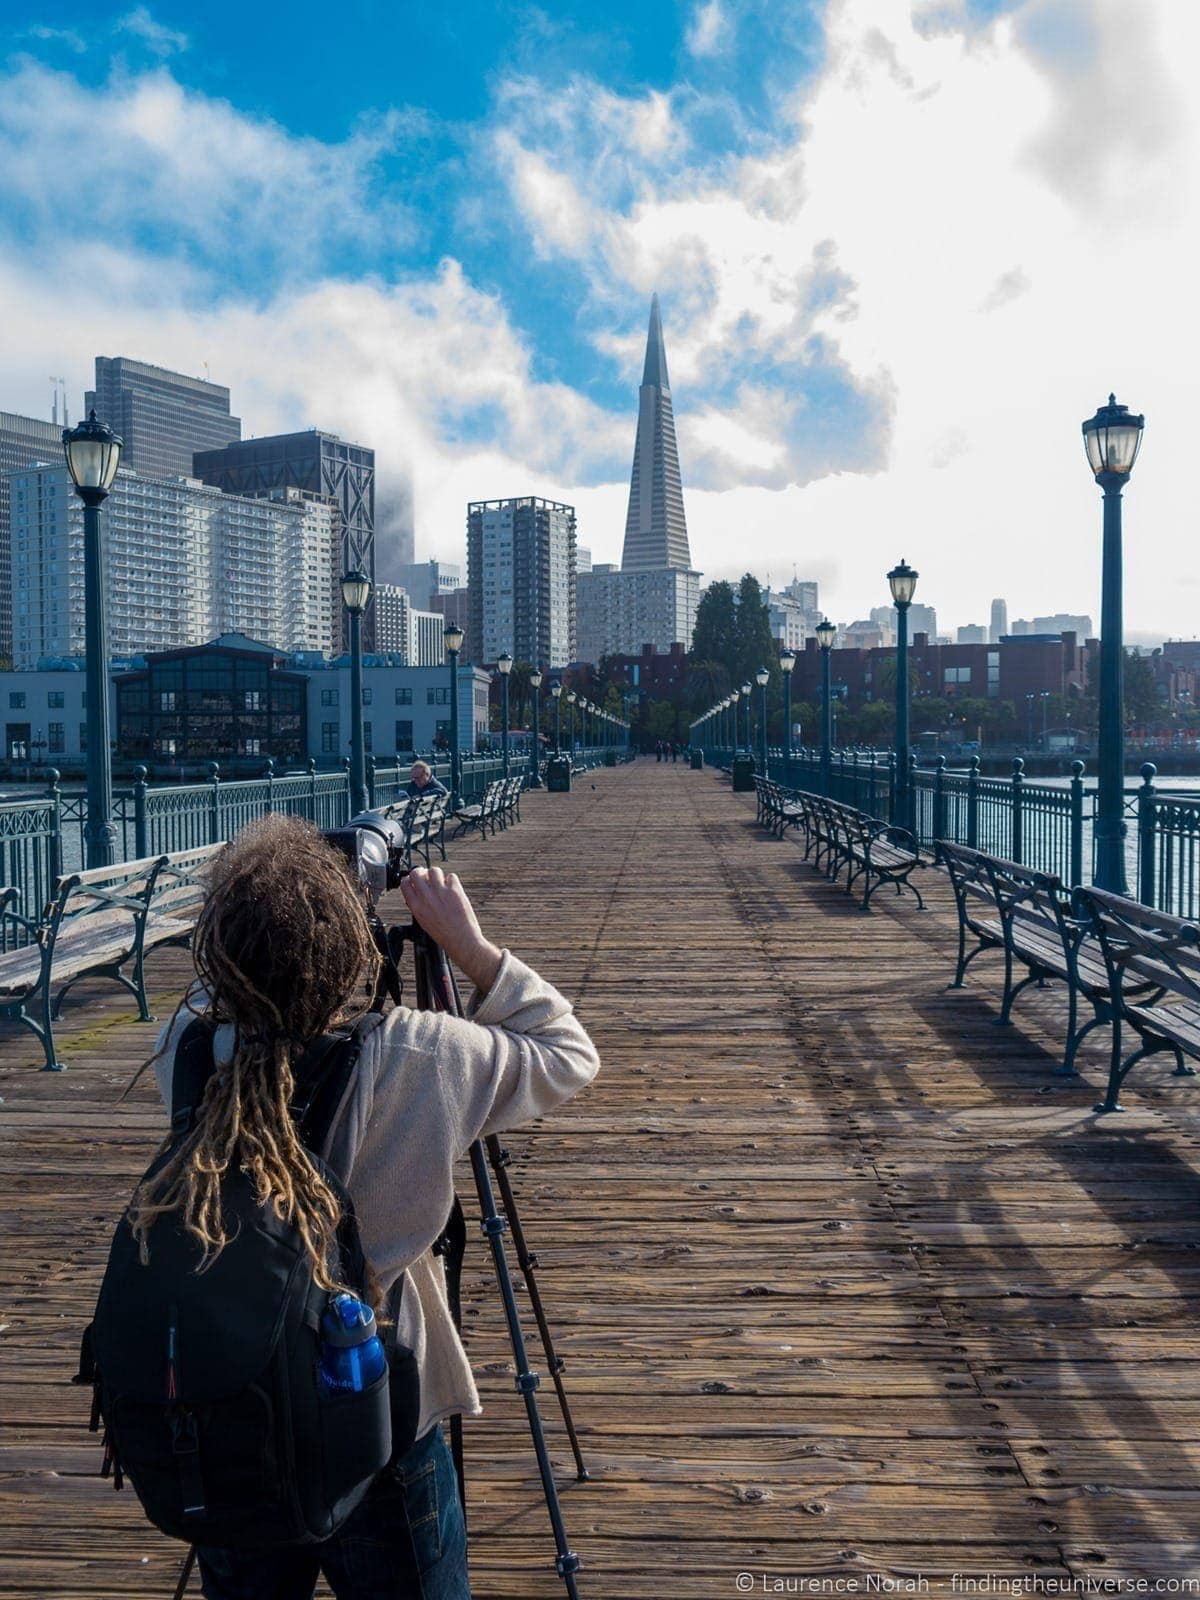 12 Best Photography Spots in San Francisco - Finding the